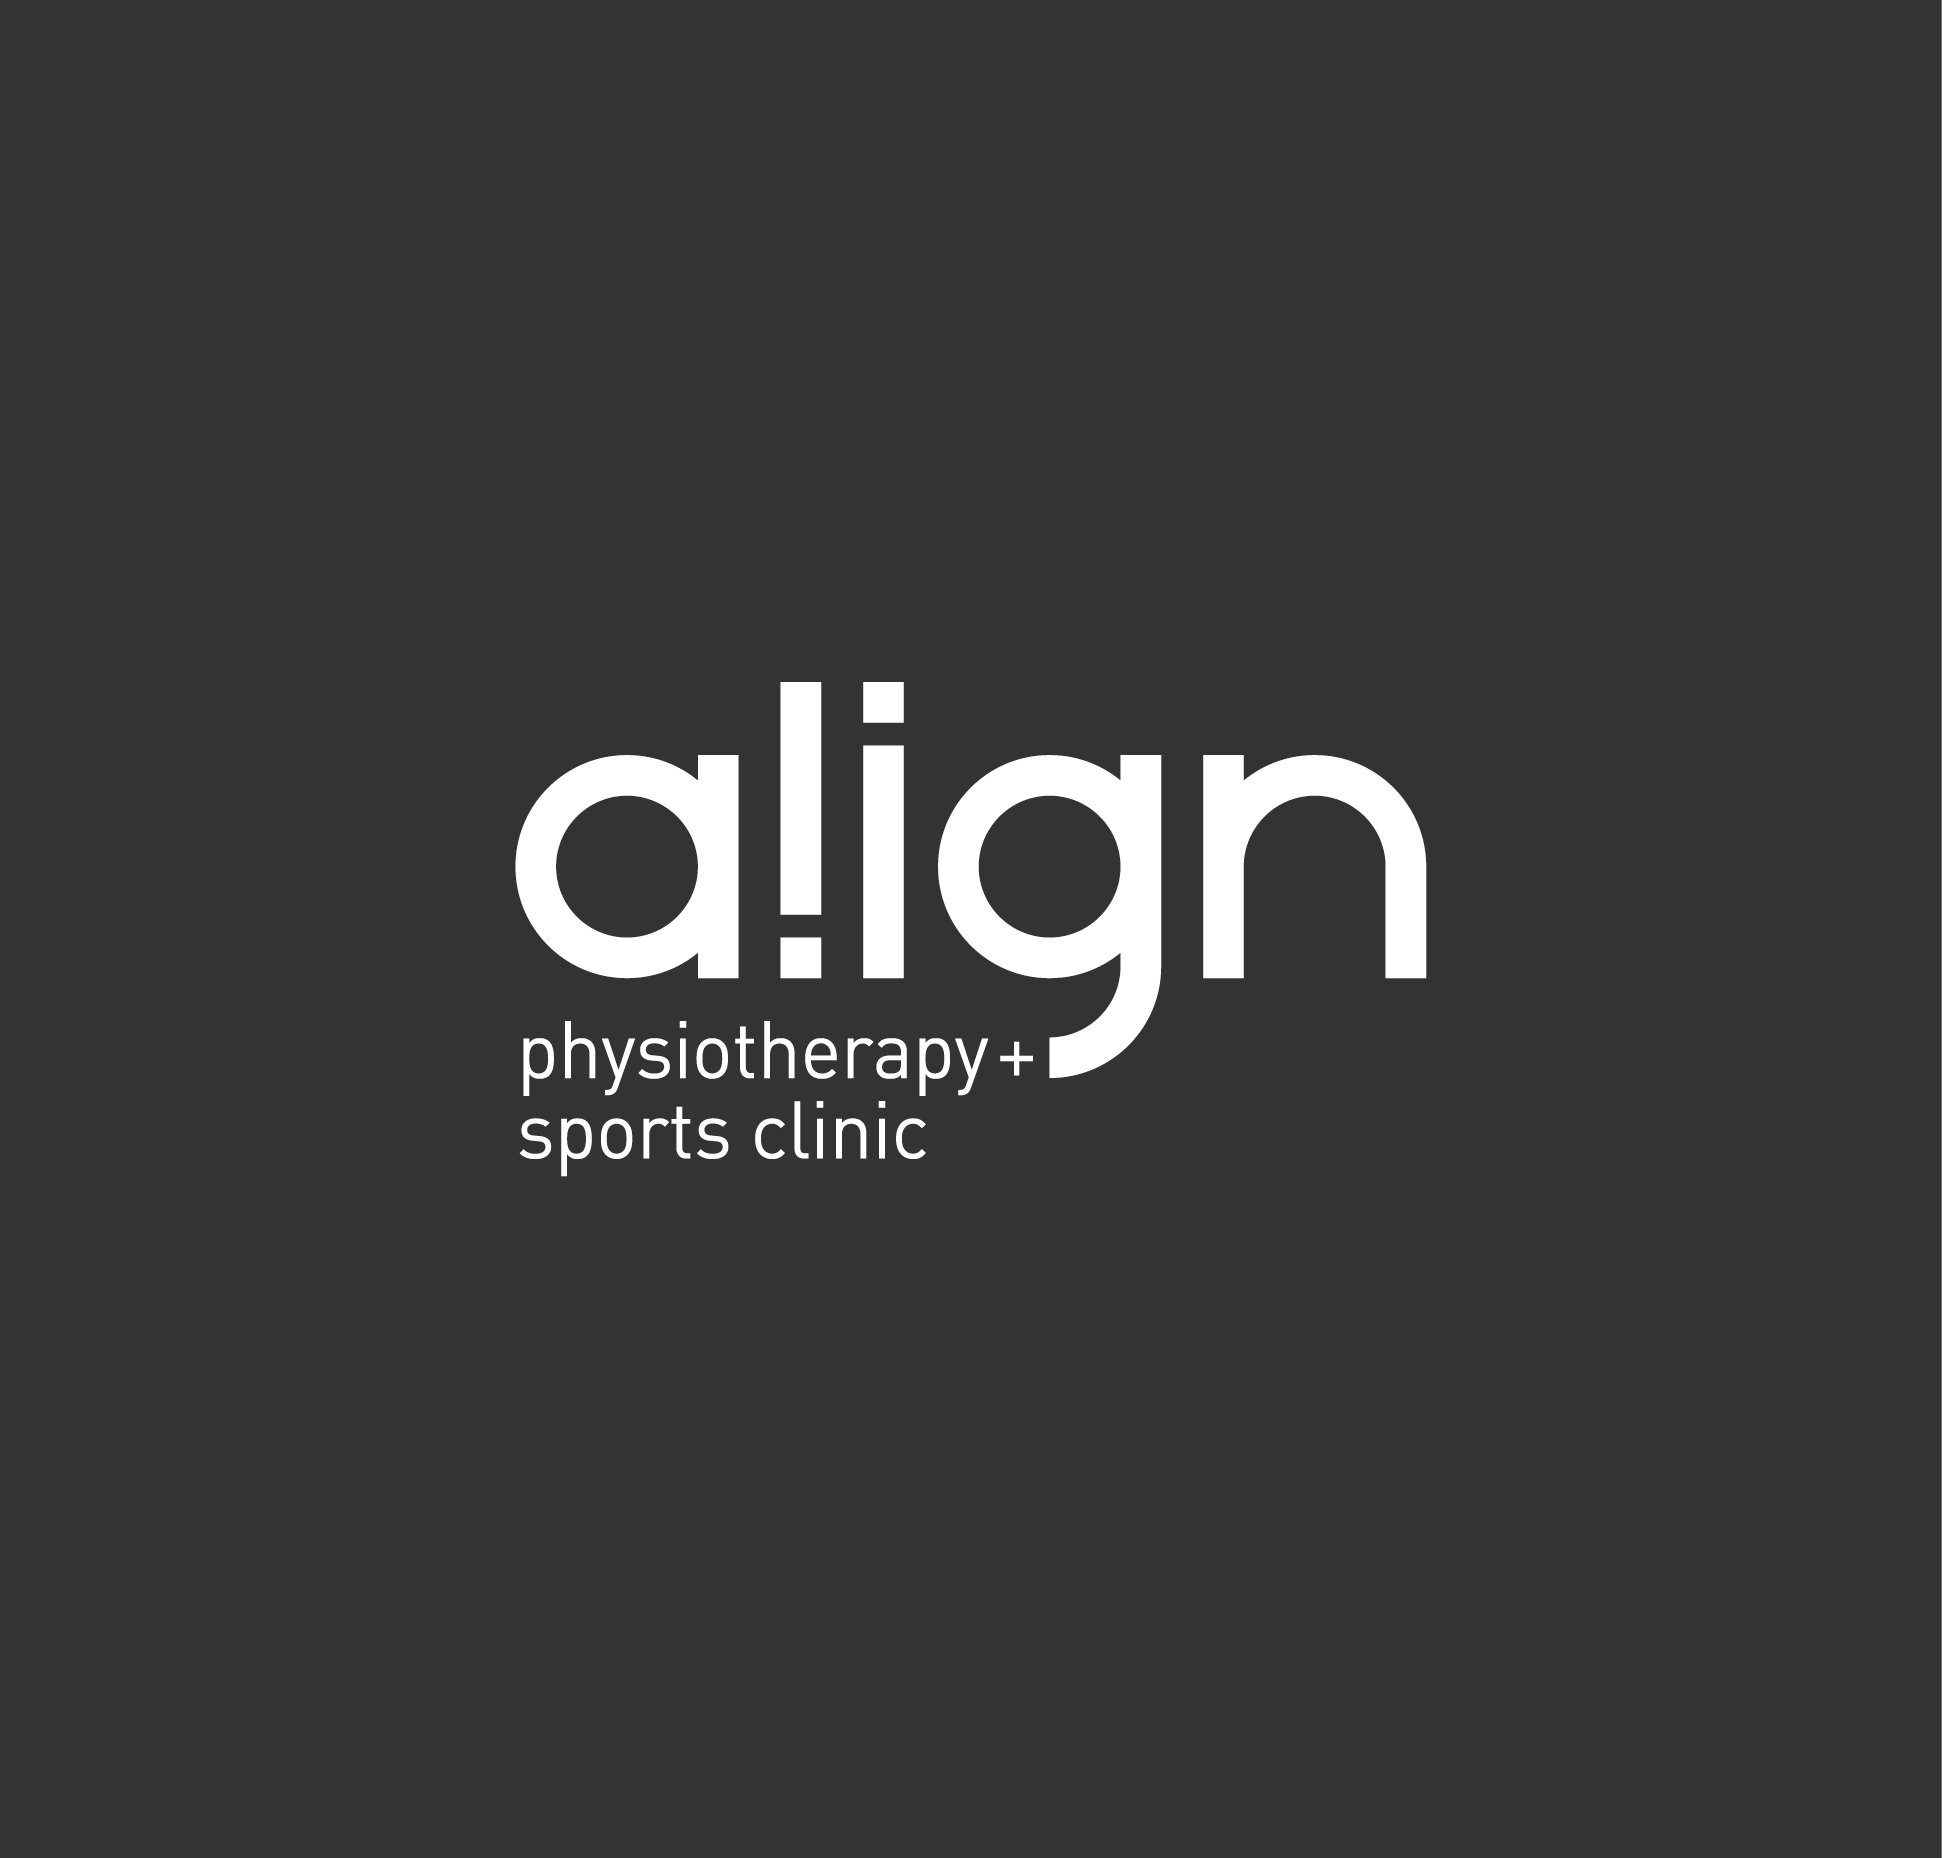 align-physiotherapy-sports-clinic-logo-brand-sputnik-design-partners-toronto.jpg